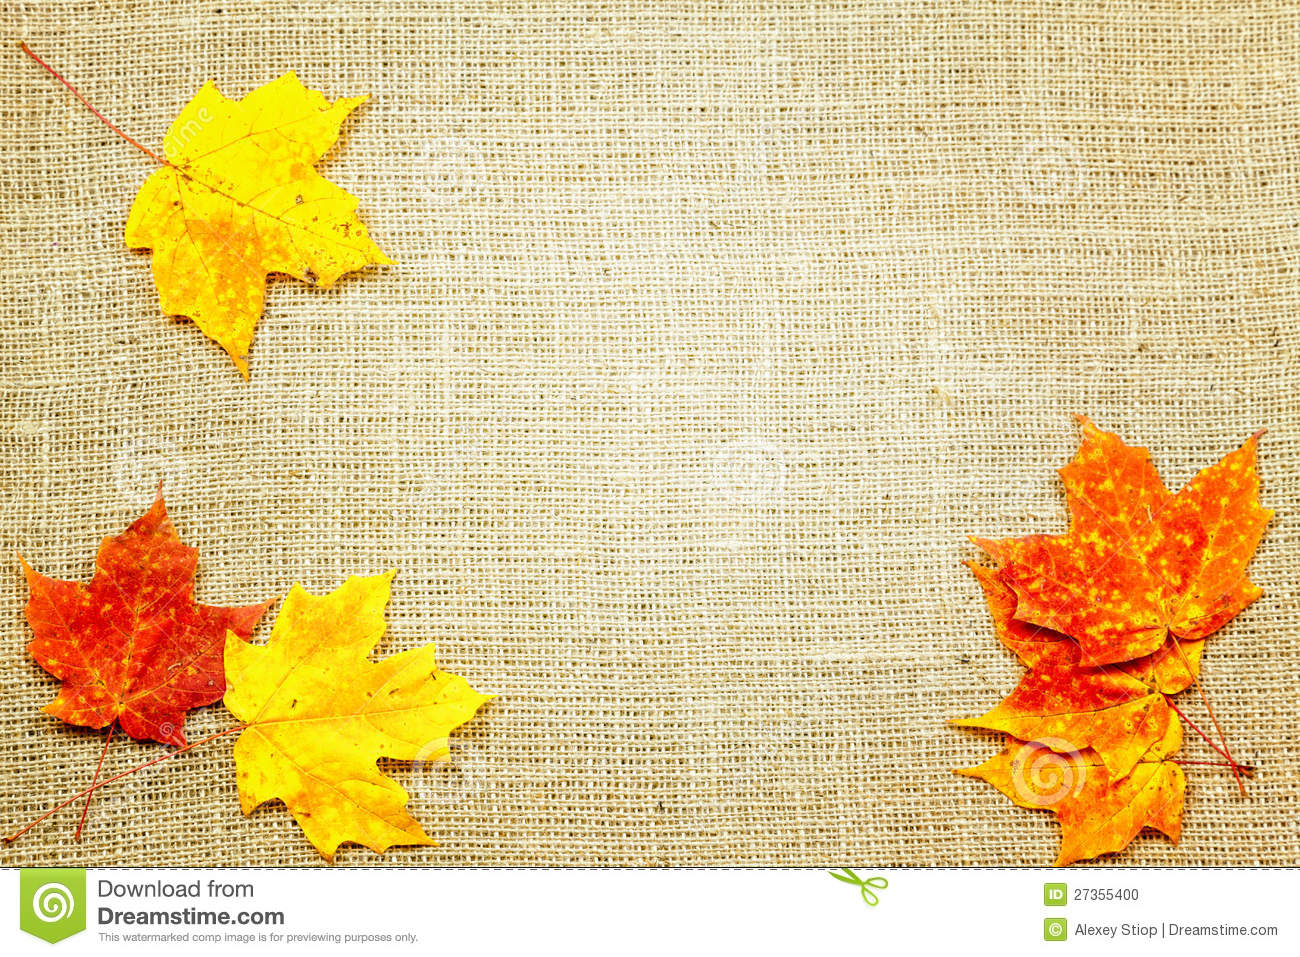 Fall-themed background of burlap and colorful leaves.